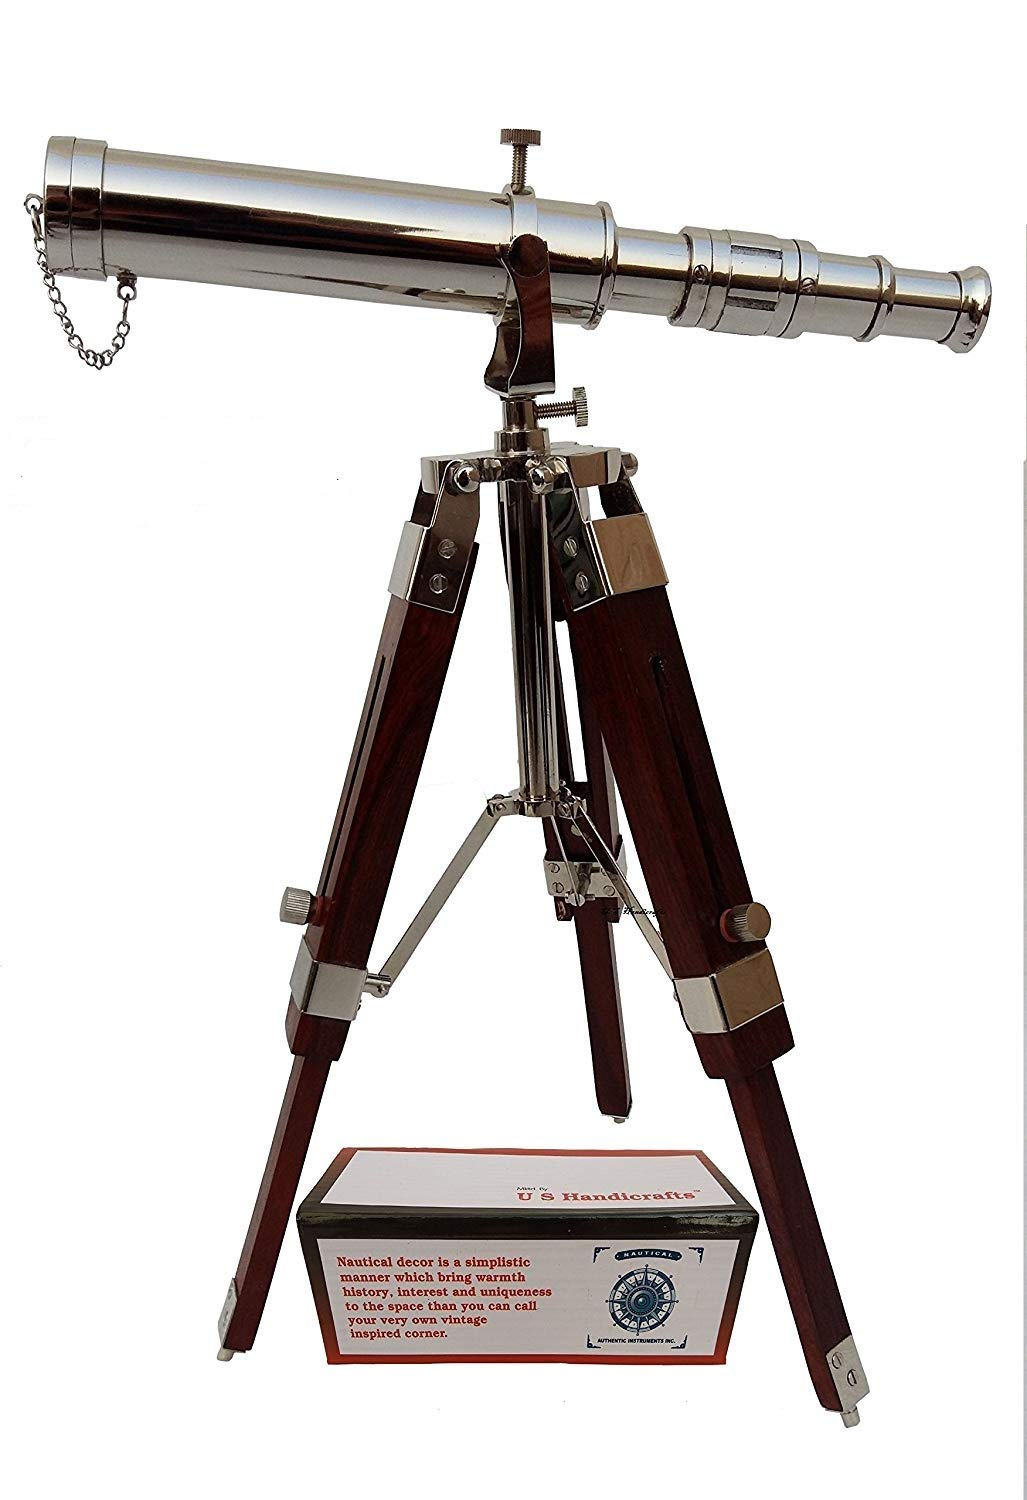 Vintage Brass NICKLE Telescope on Tripod Stand / Chrome Desktop Telescope for Home Decor & Table accessory Nautical Spyglass Telescope for Navy and Outdoor Adventures.............. 1179